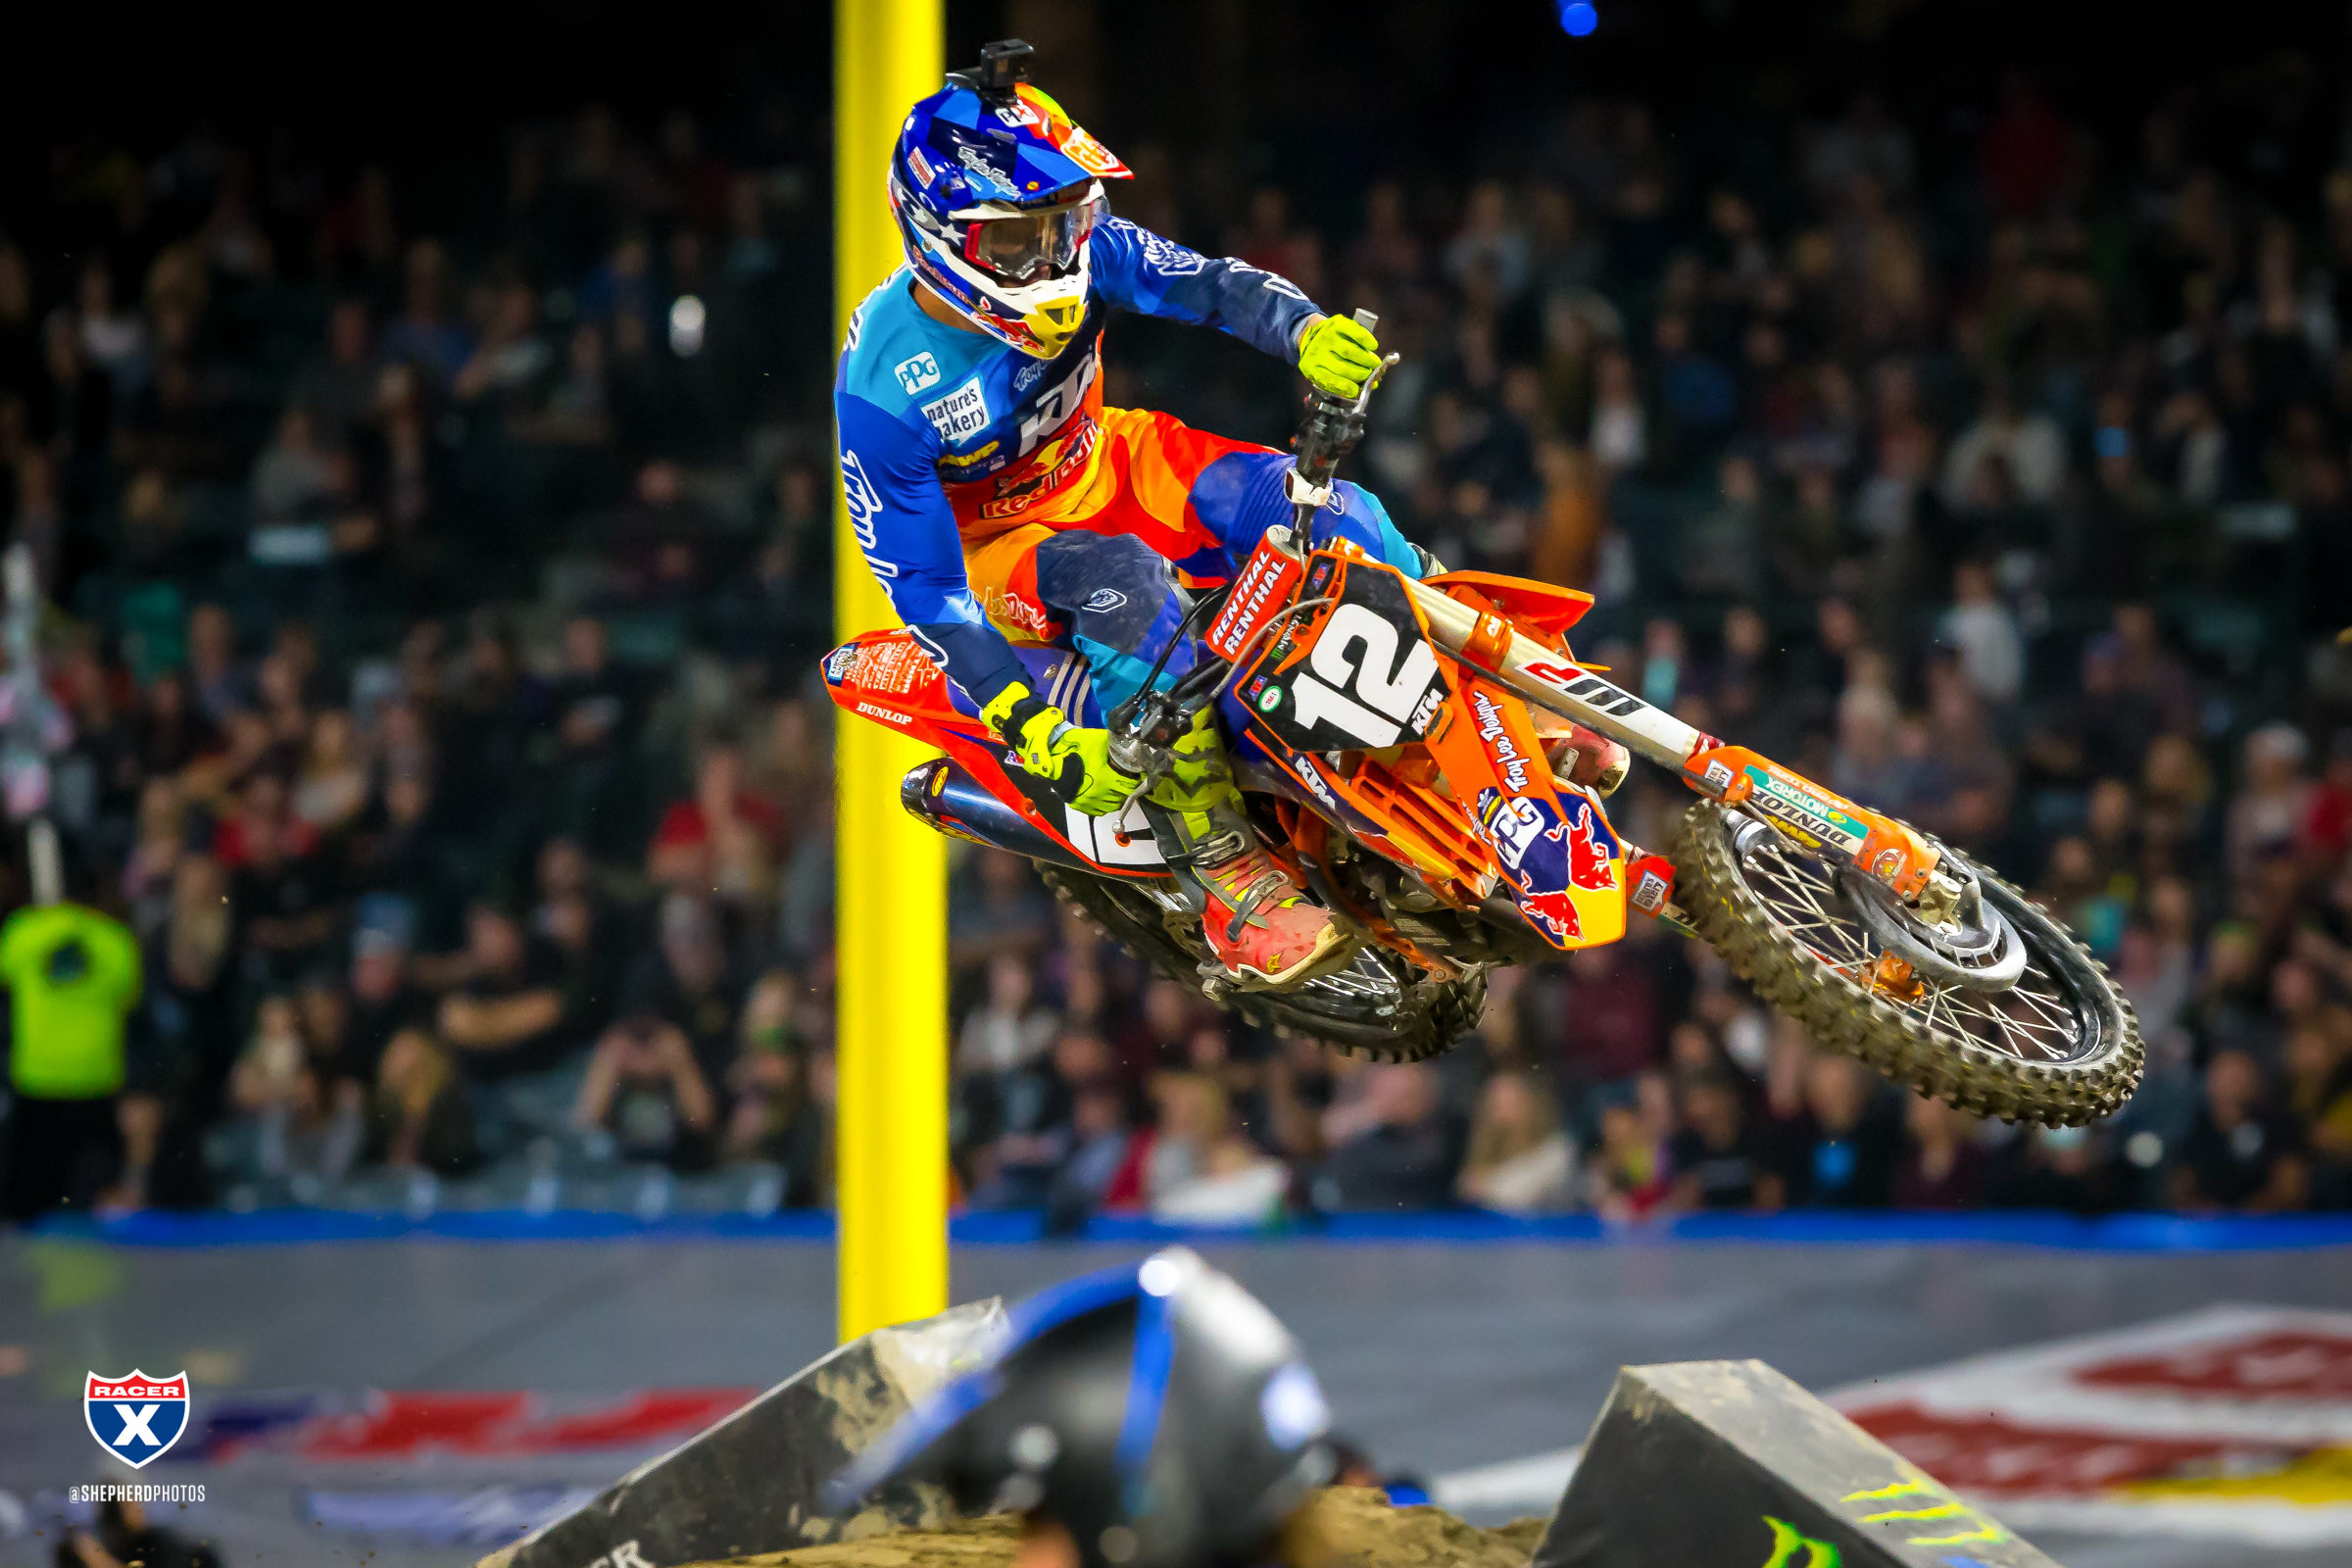 McElrath_RS_SX19_Anaheim2_055